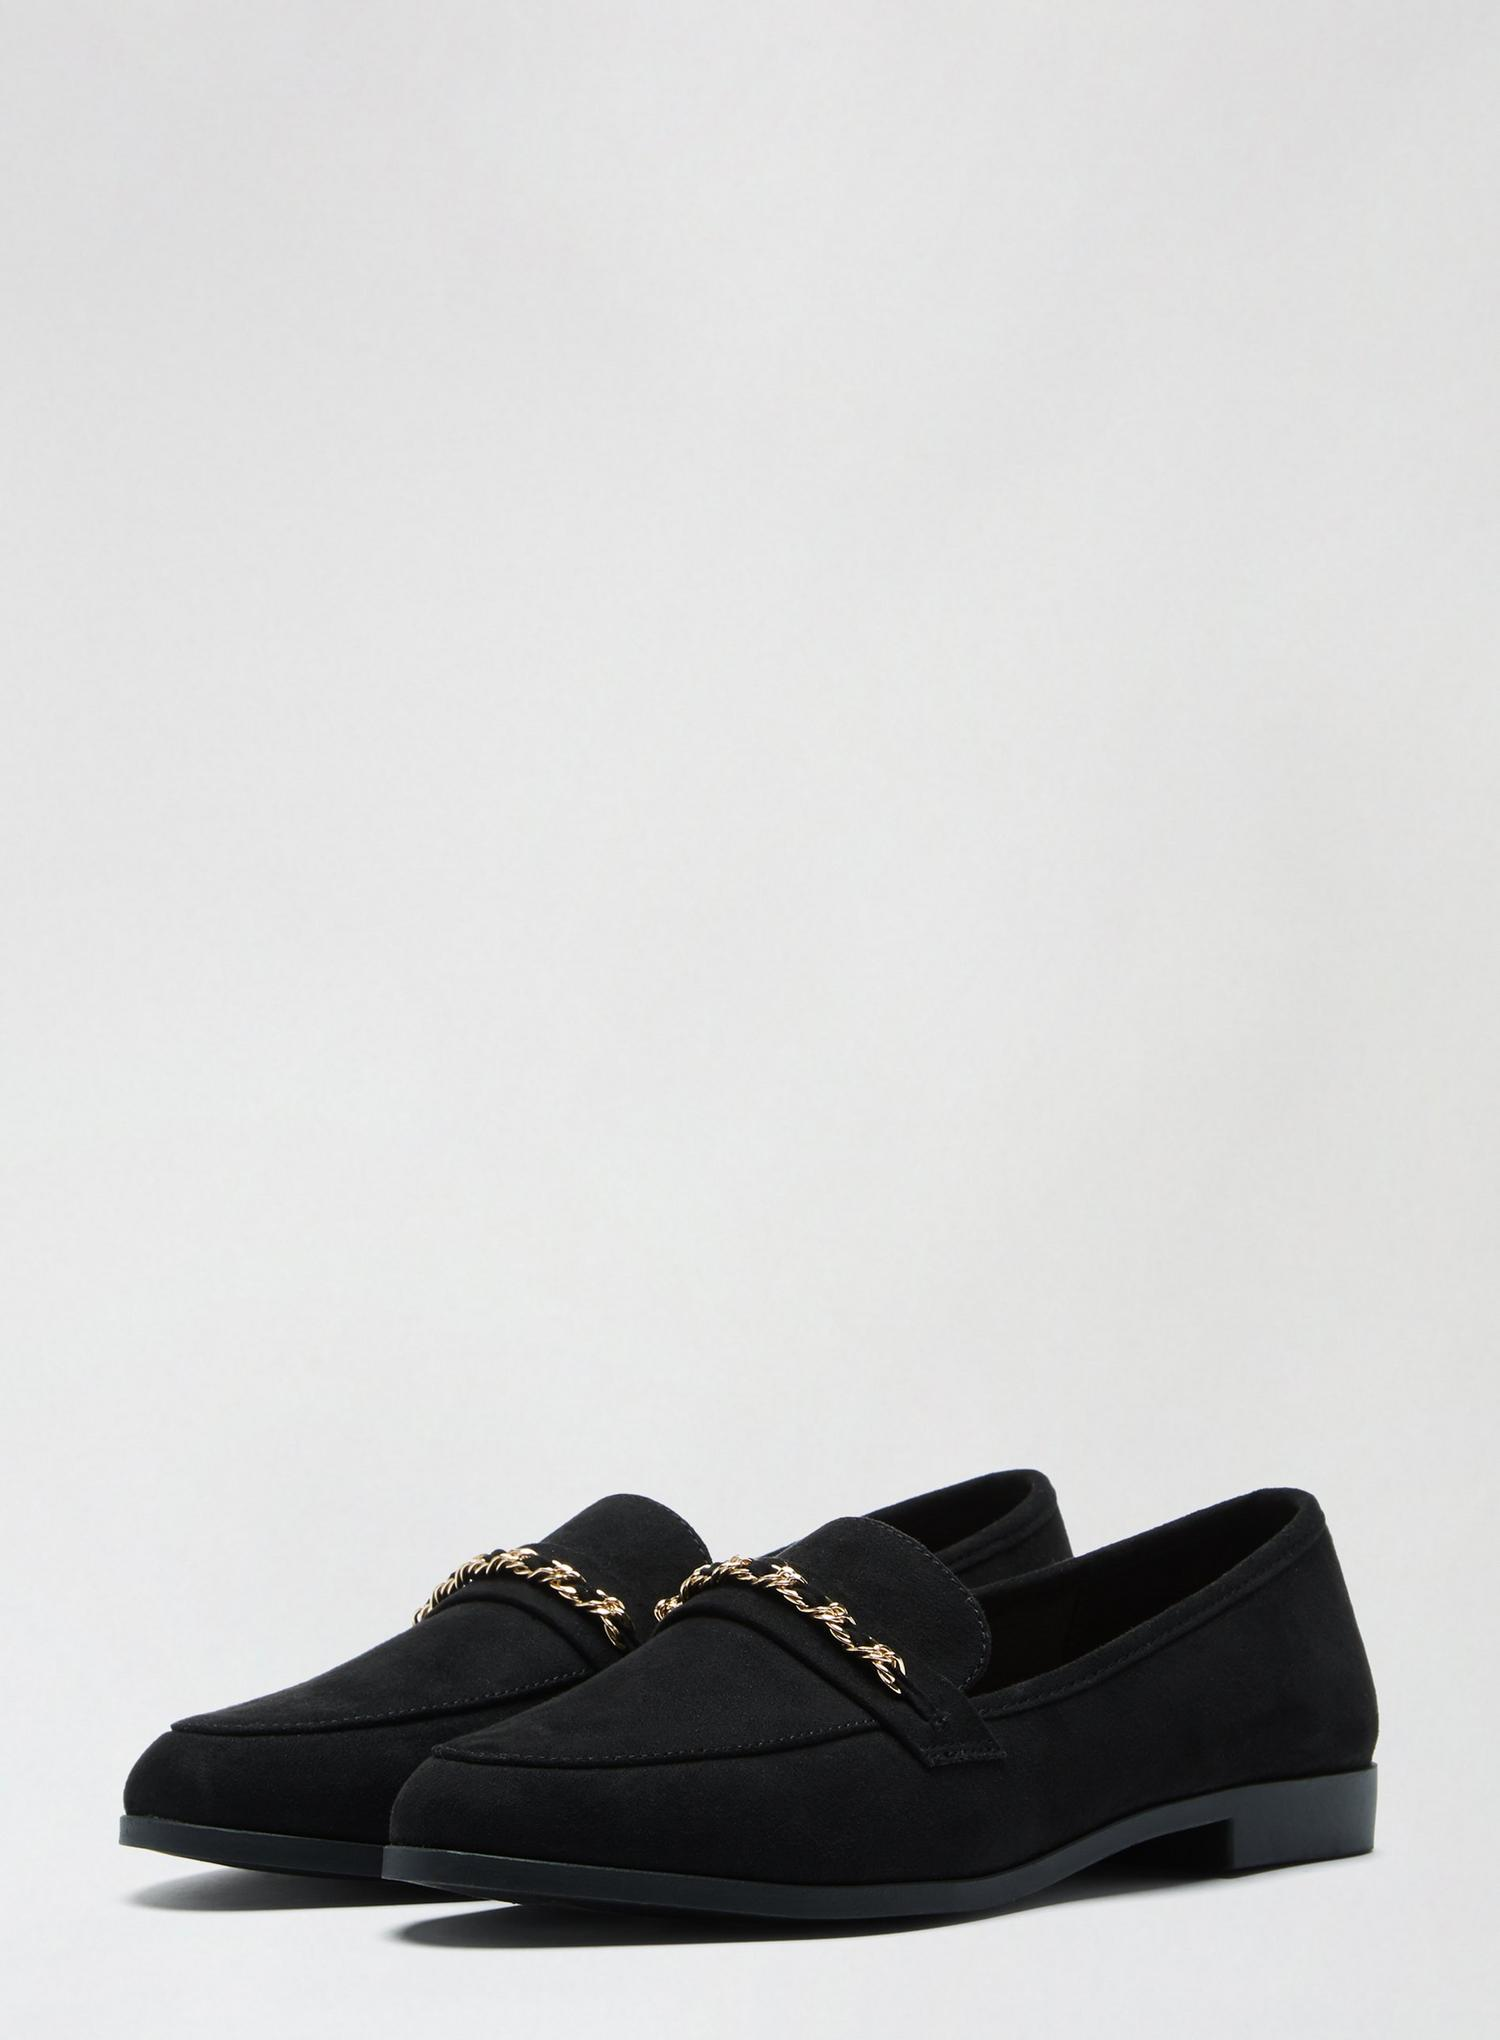 105 Black Libra Loafers image number 2